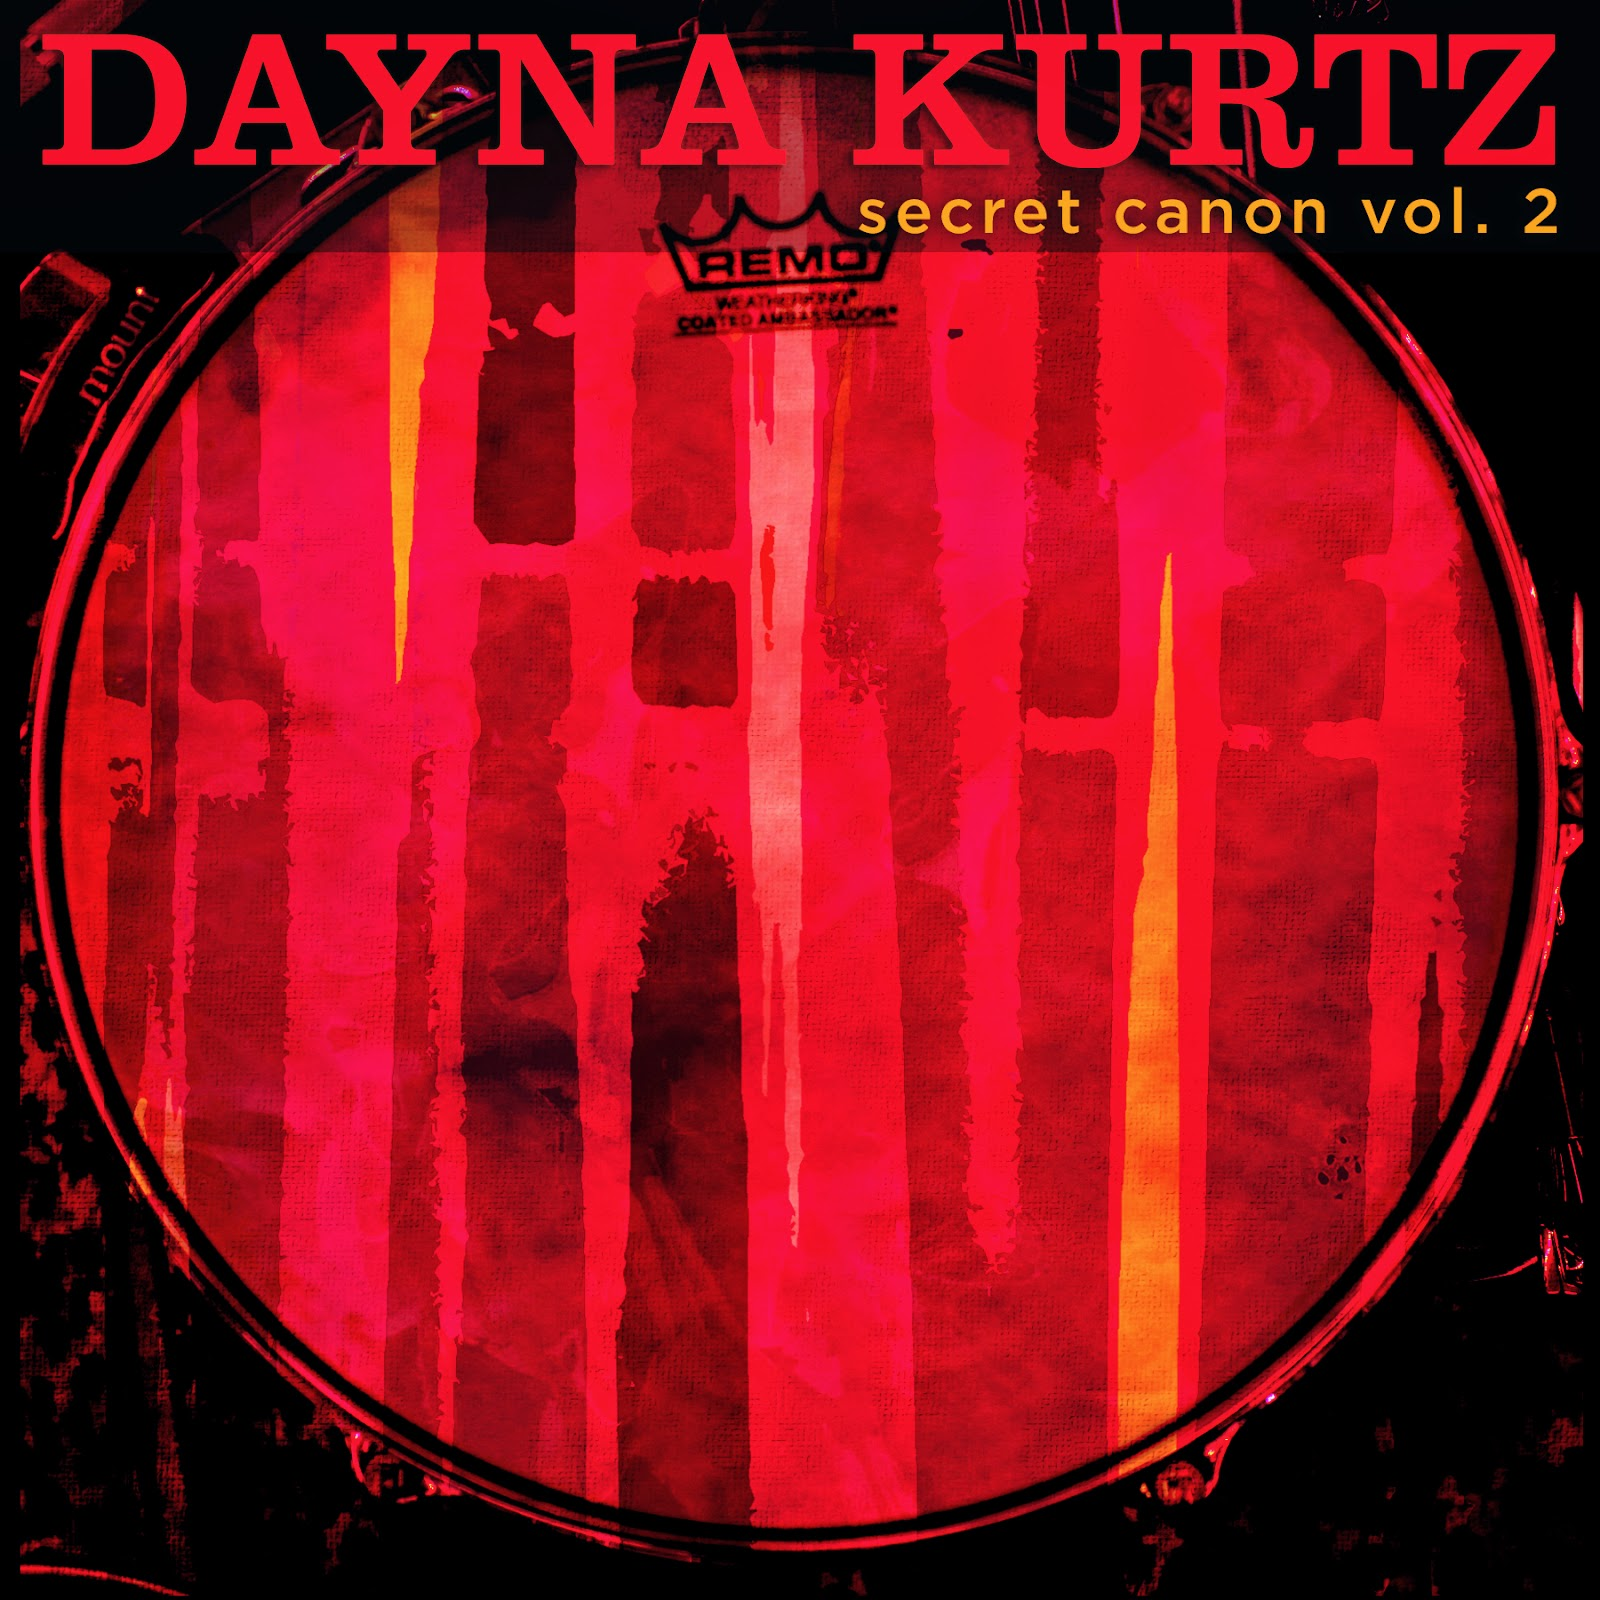 Dayna Kurtz - Secret Canon Vol. 2